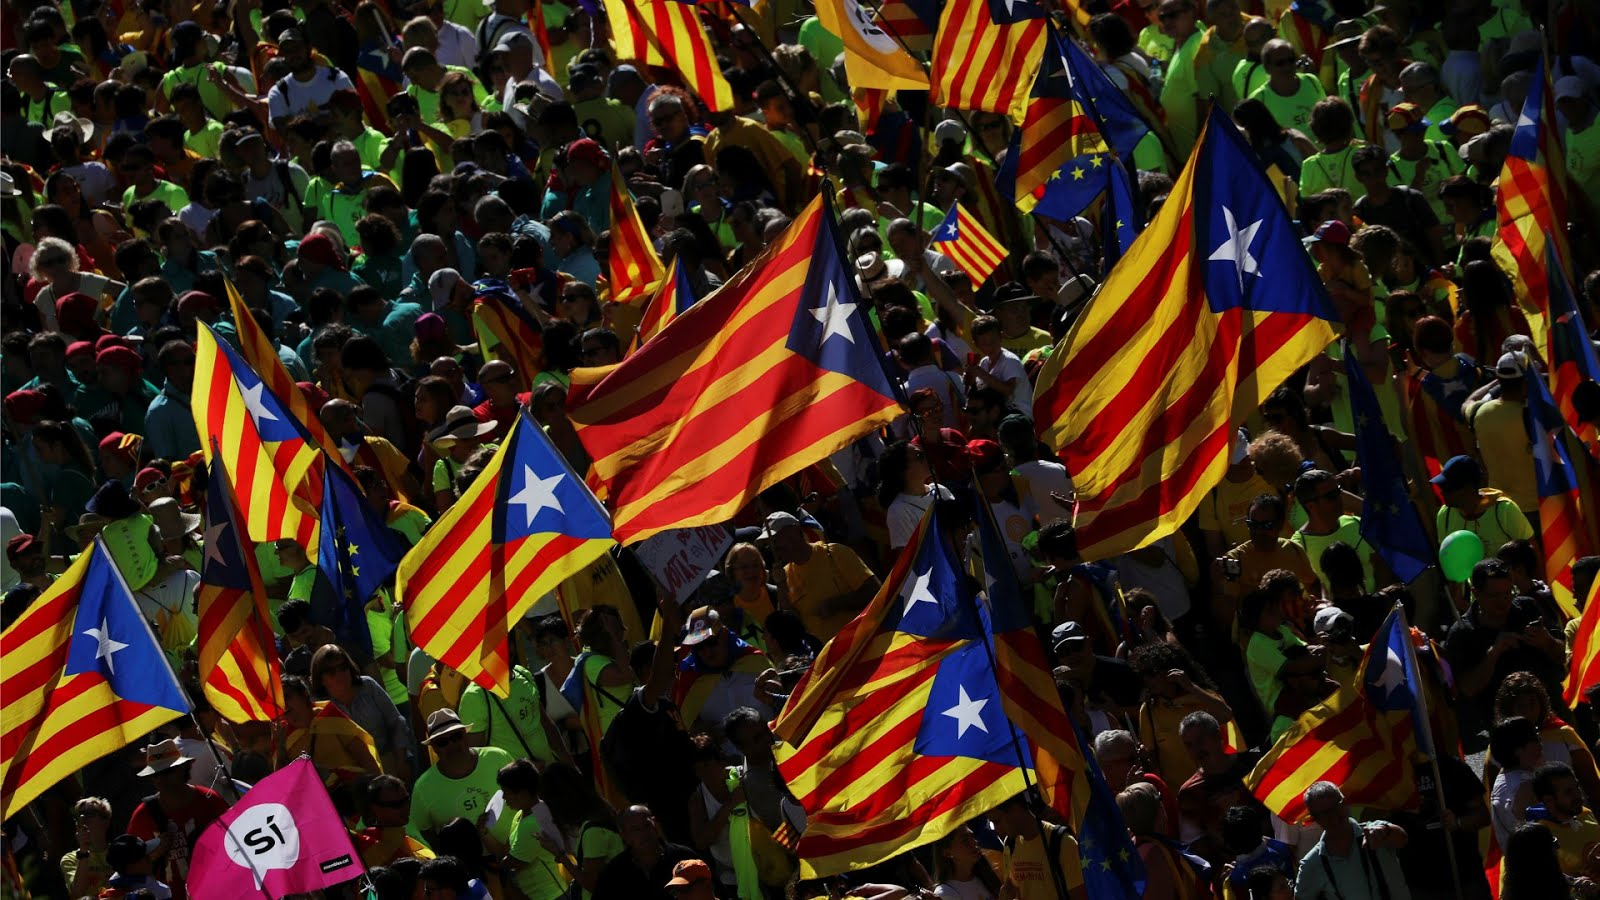 ✓ Catalan independence referendum, October 1, 2017